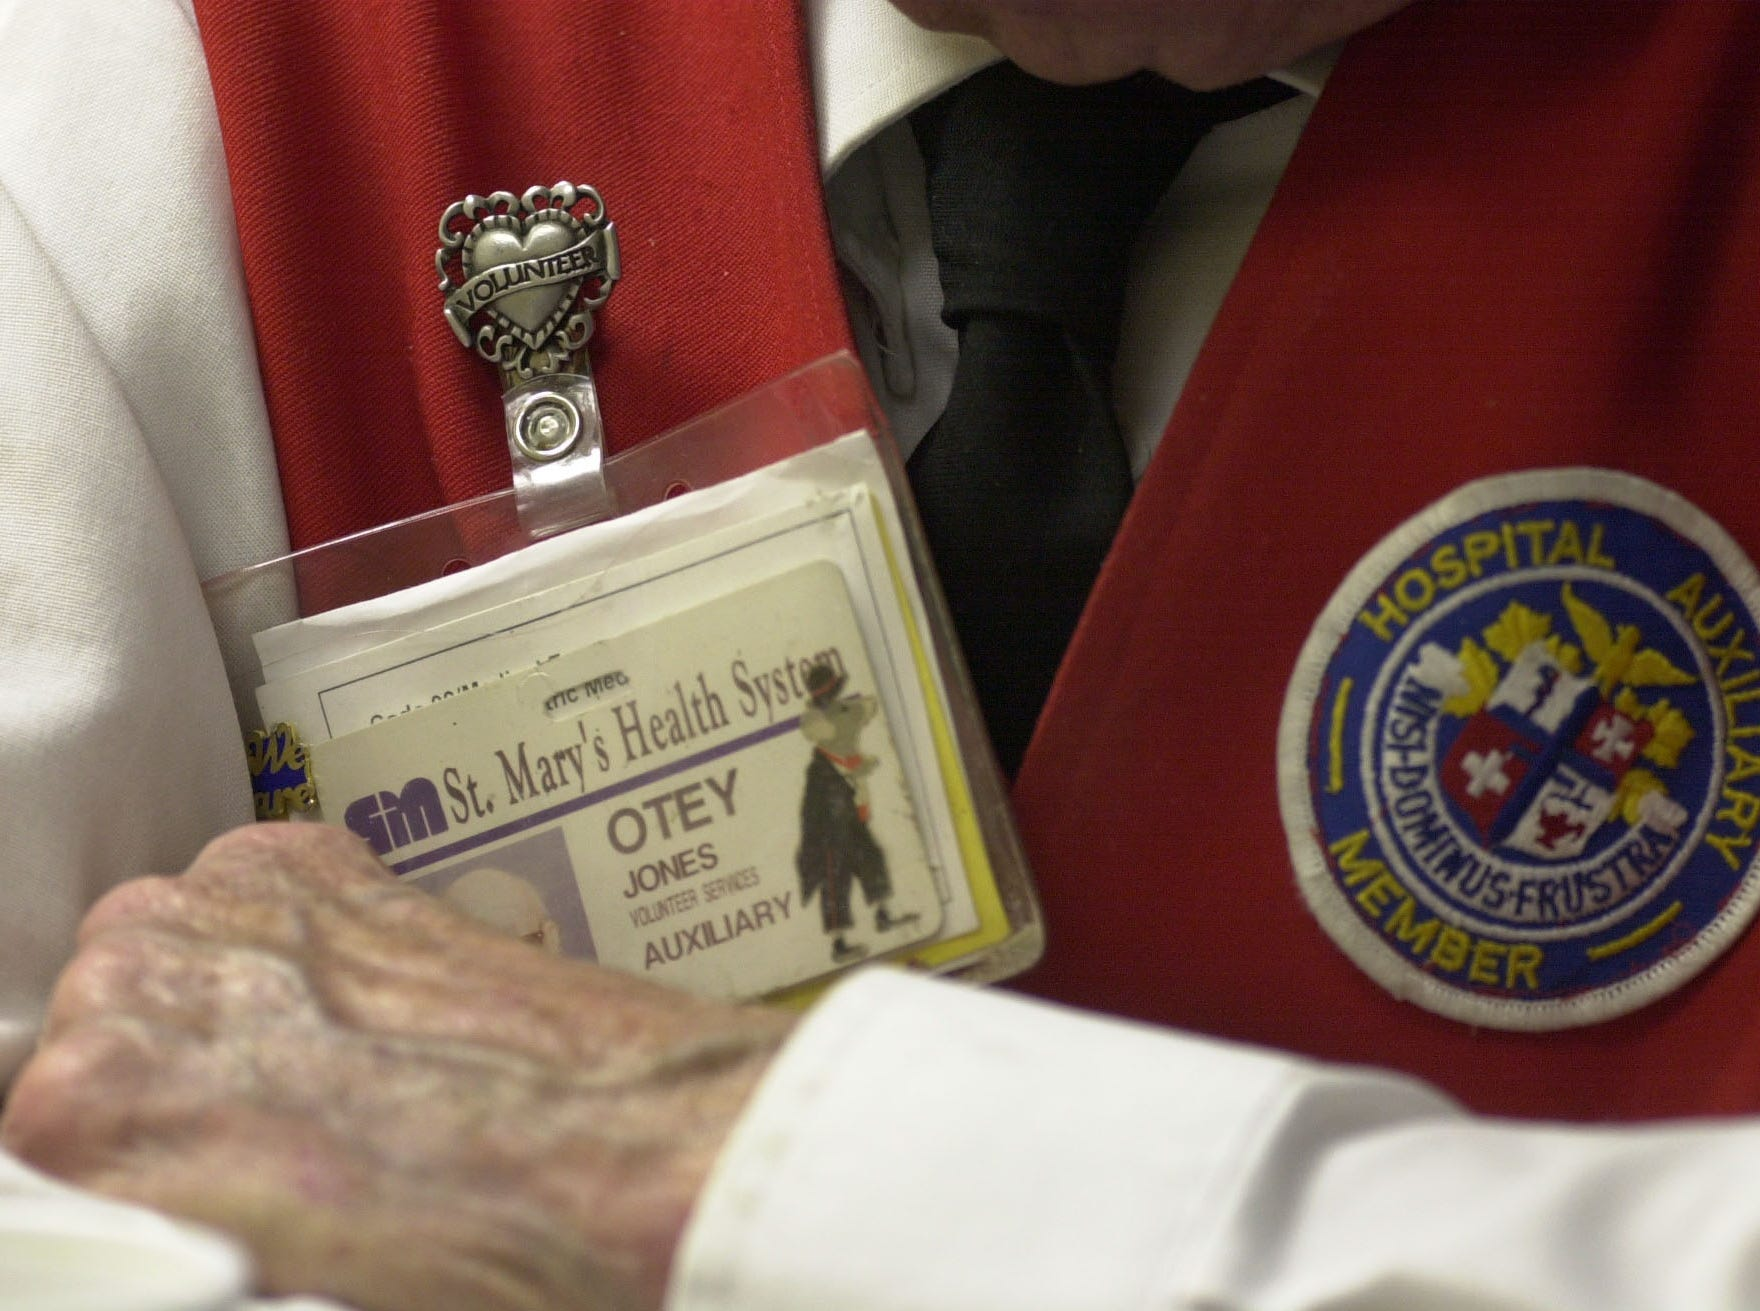 Detail shot of Otey Jones' nametag and vest.  Eighty-seven-year-old Jones has volunteered over 46,000 hours during the last 15 years at St. Mary's.